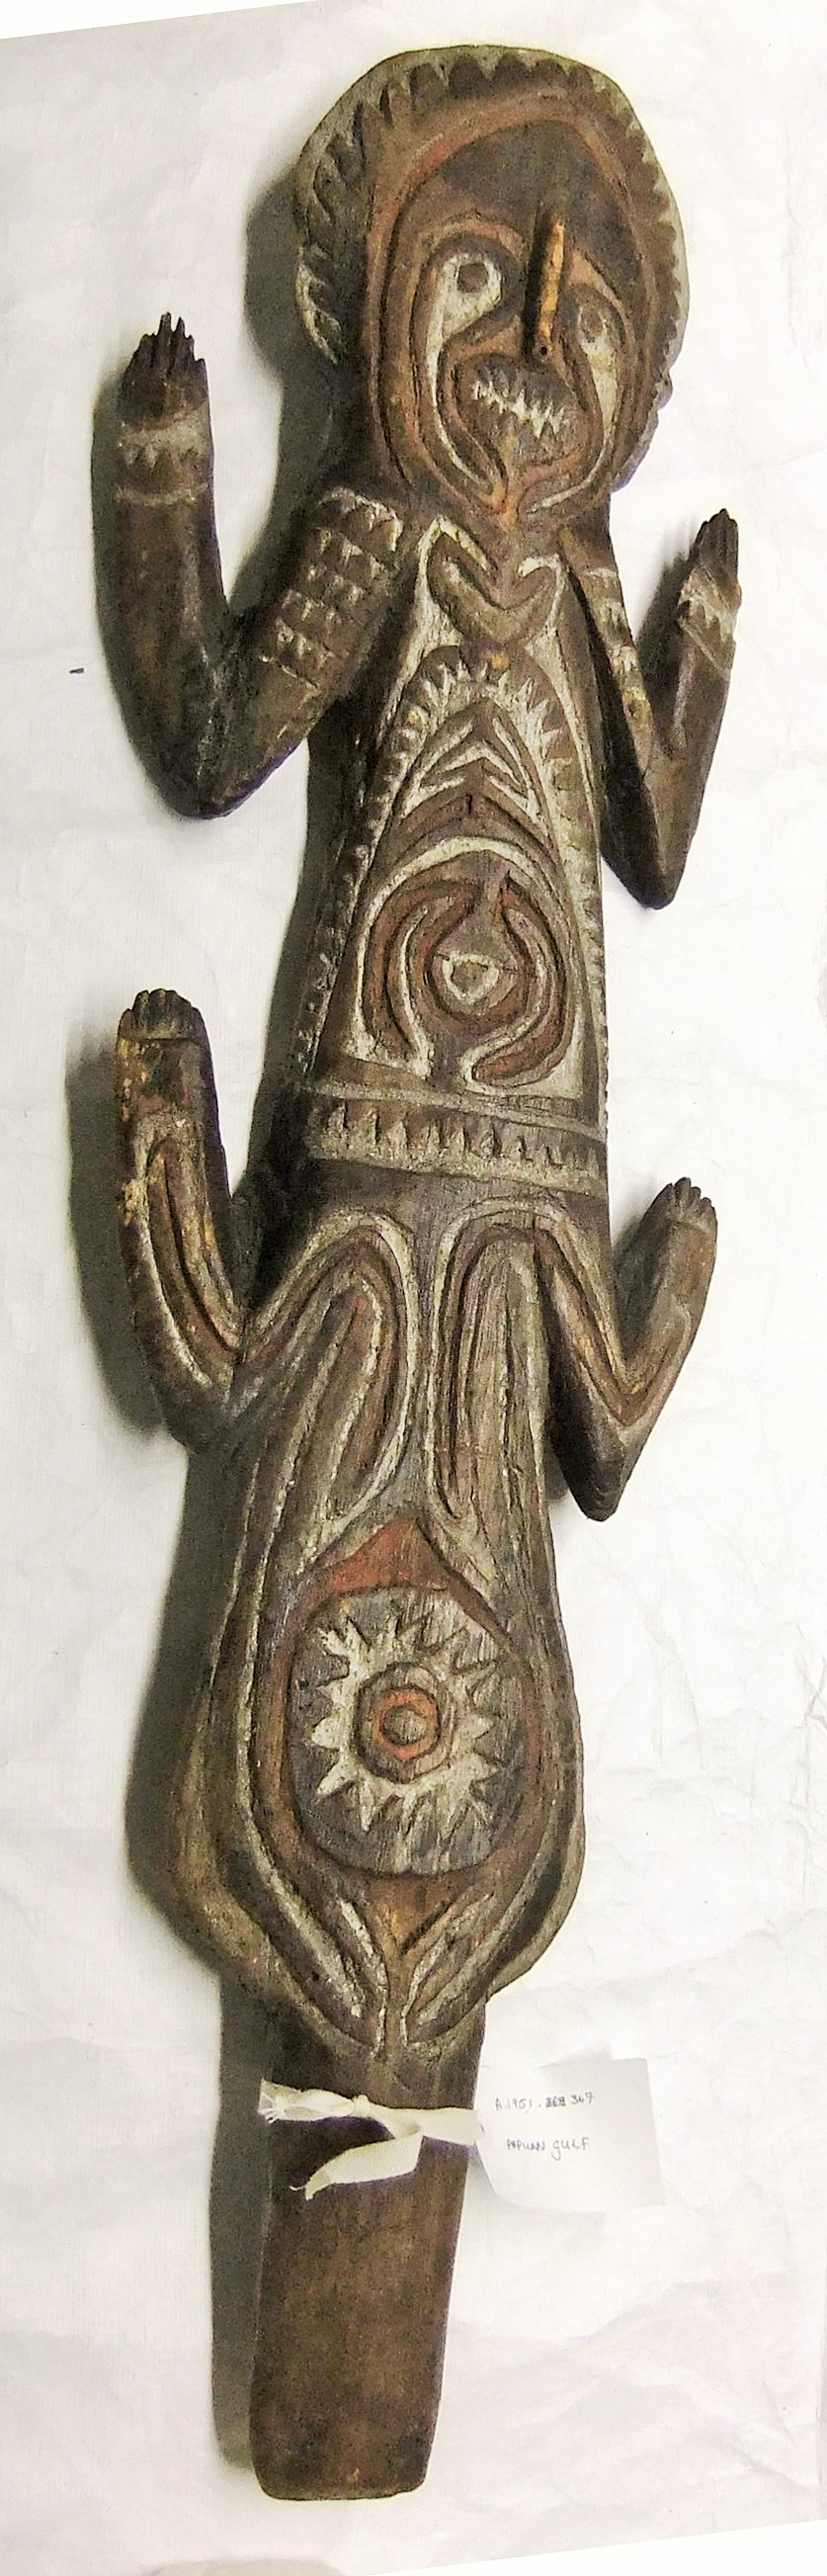 A.1951.367 kwoi or ancestral tablet in the form of a man